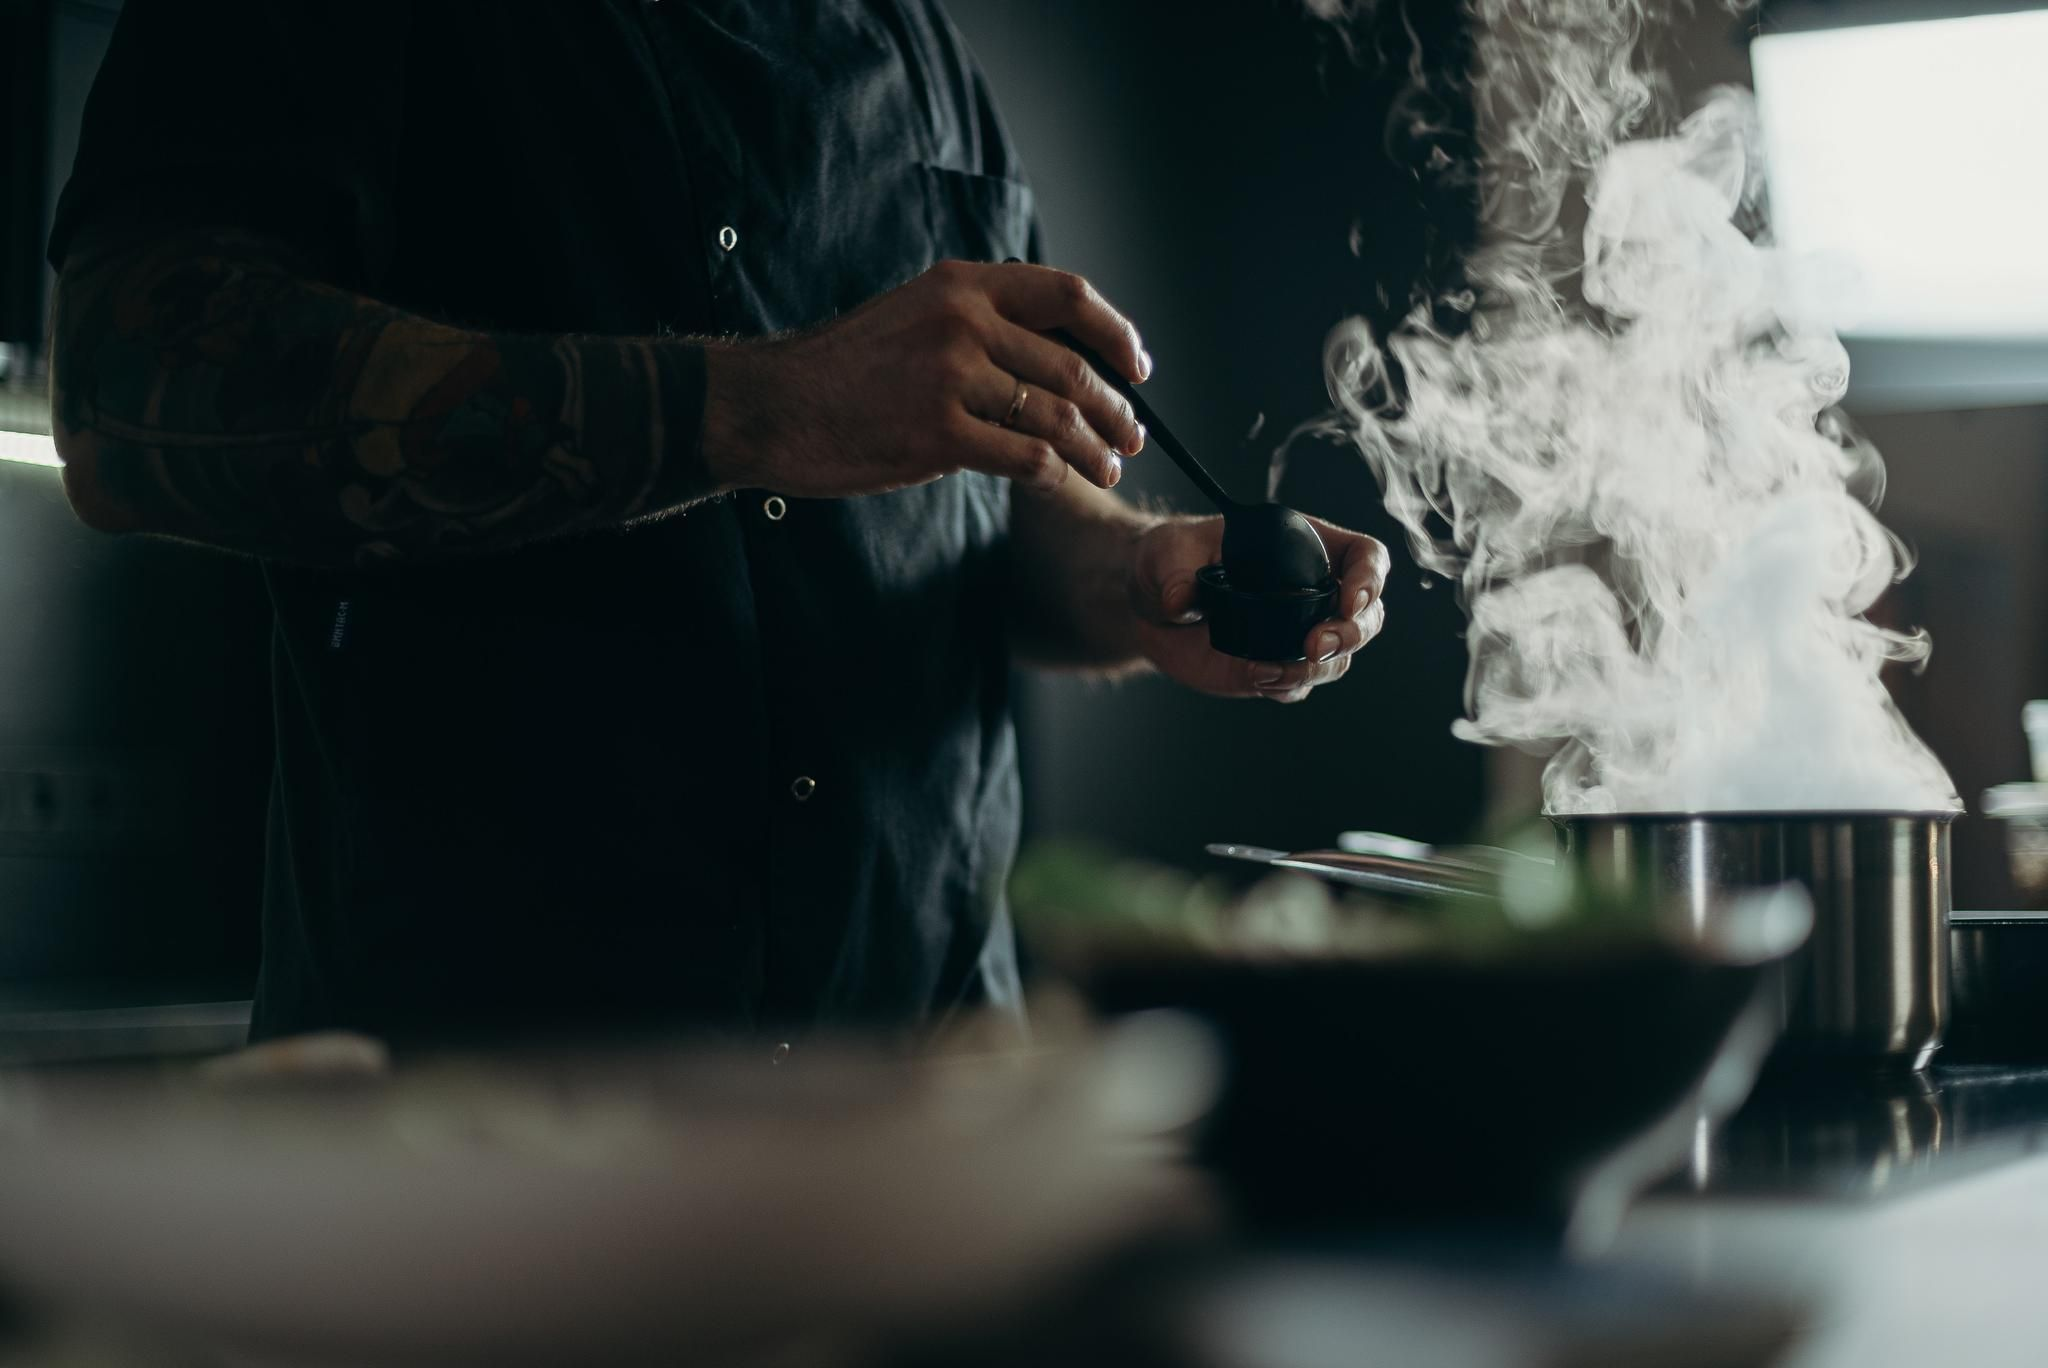 Are cloud kitchens the future of the food industry?